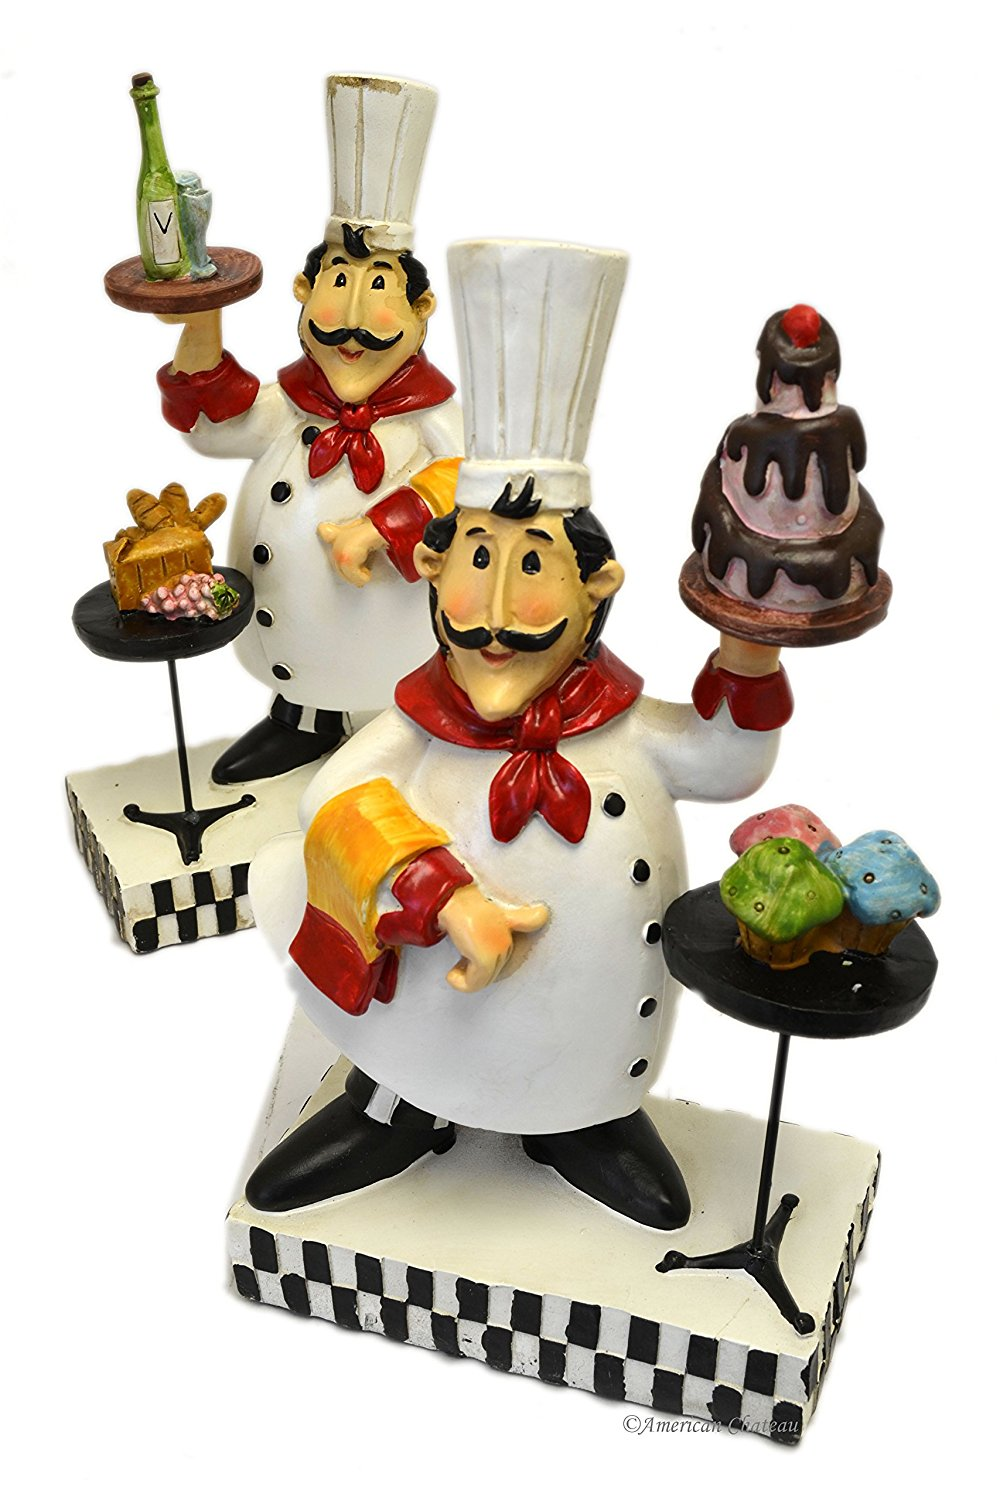 Get Quotations Set Of 2 Resin 10 5 Distressed Fat French Chef Figurines Statues Kitchen Decor